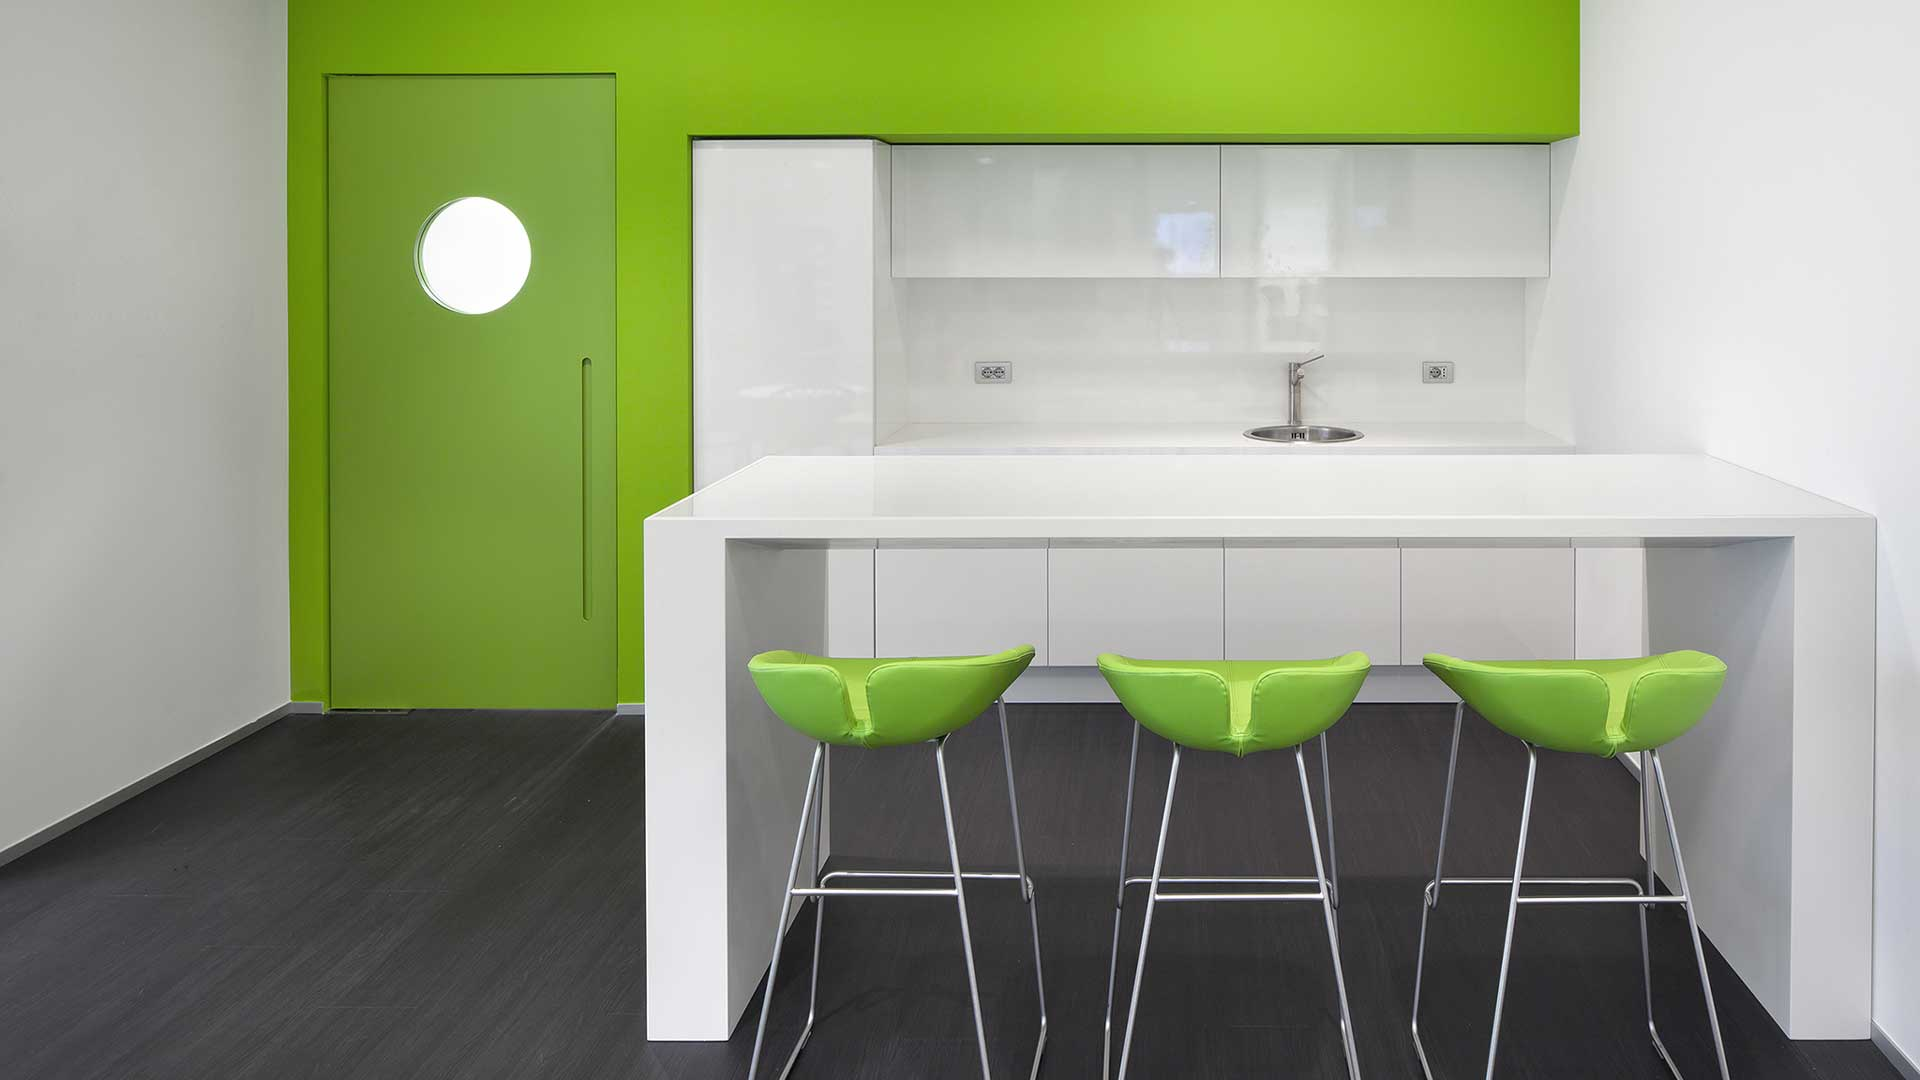 Kitchenette-Bausch-Lomb-Level-Office-Landscape